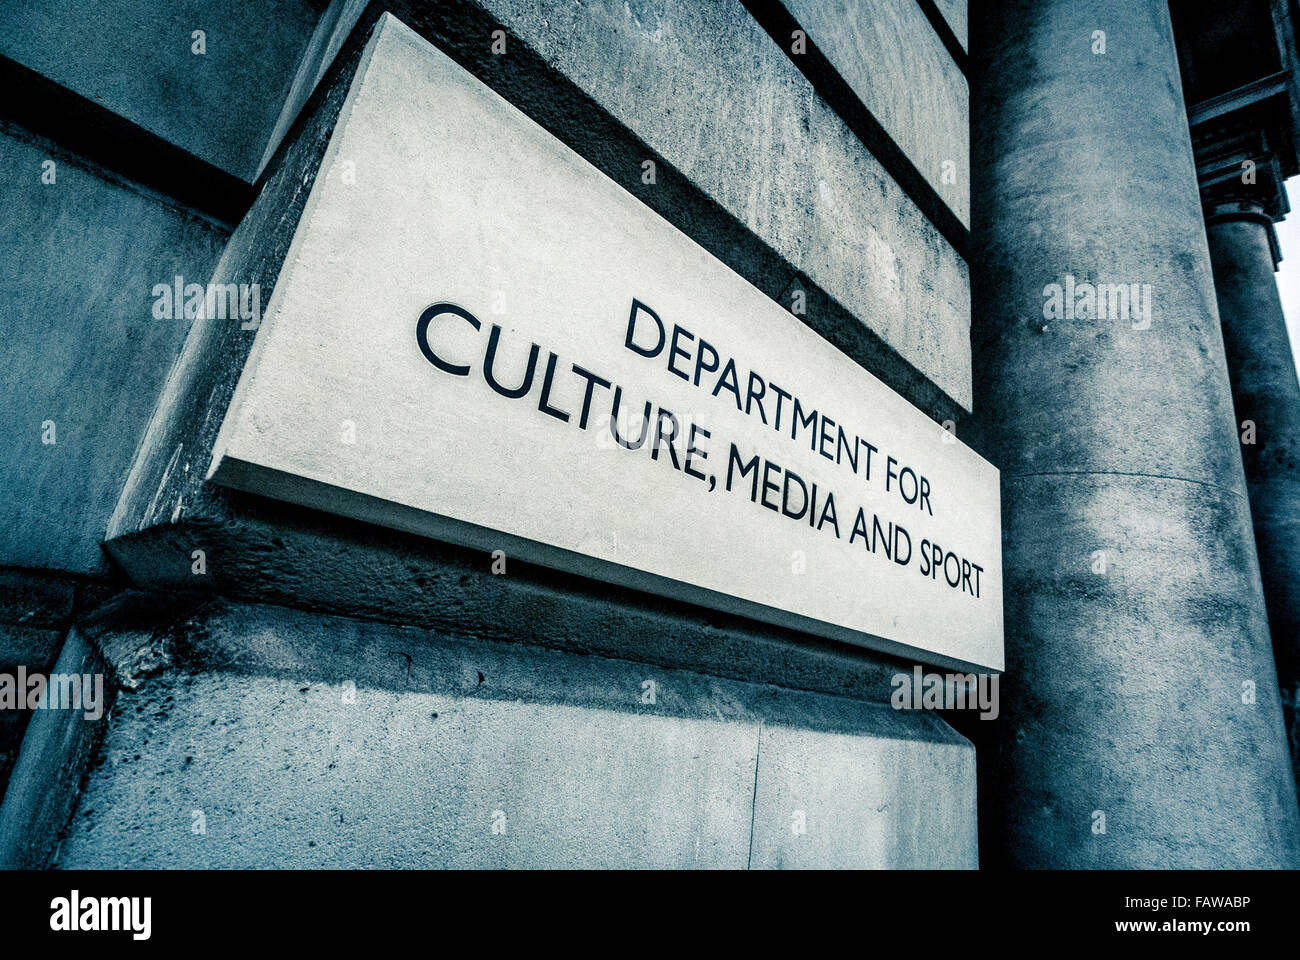 Department for Culture, Media and sport, sign on building in Whitehall, London, UK. - Stock Image